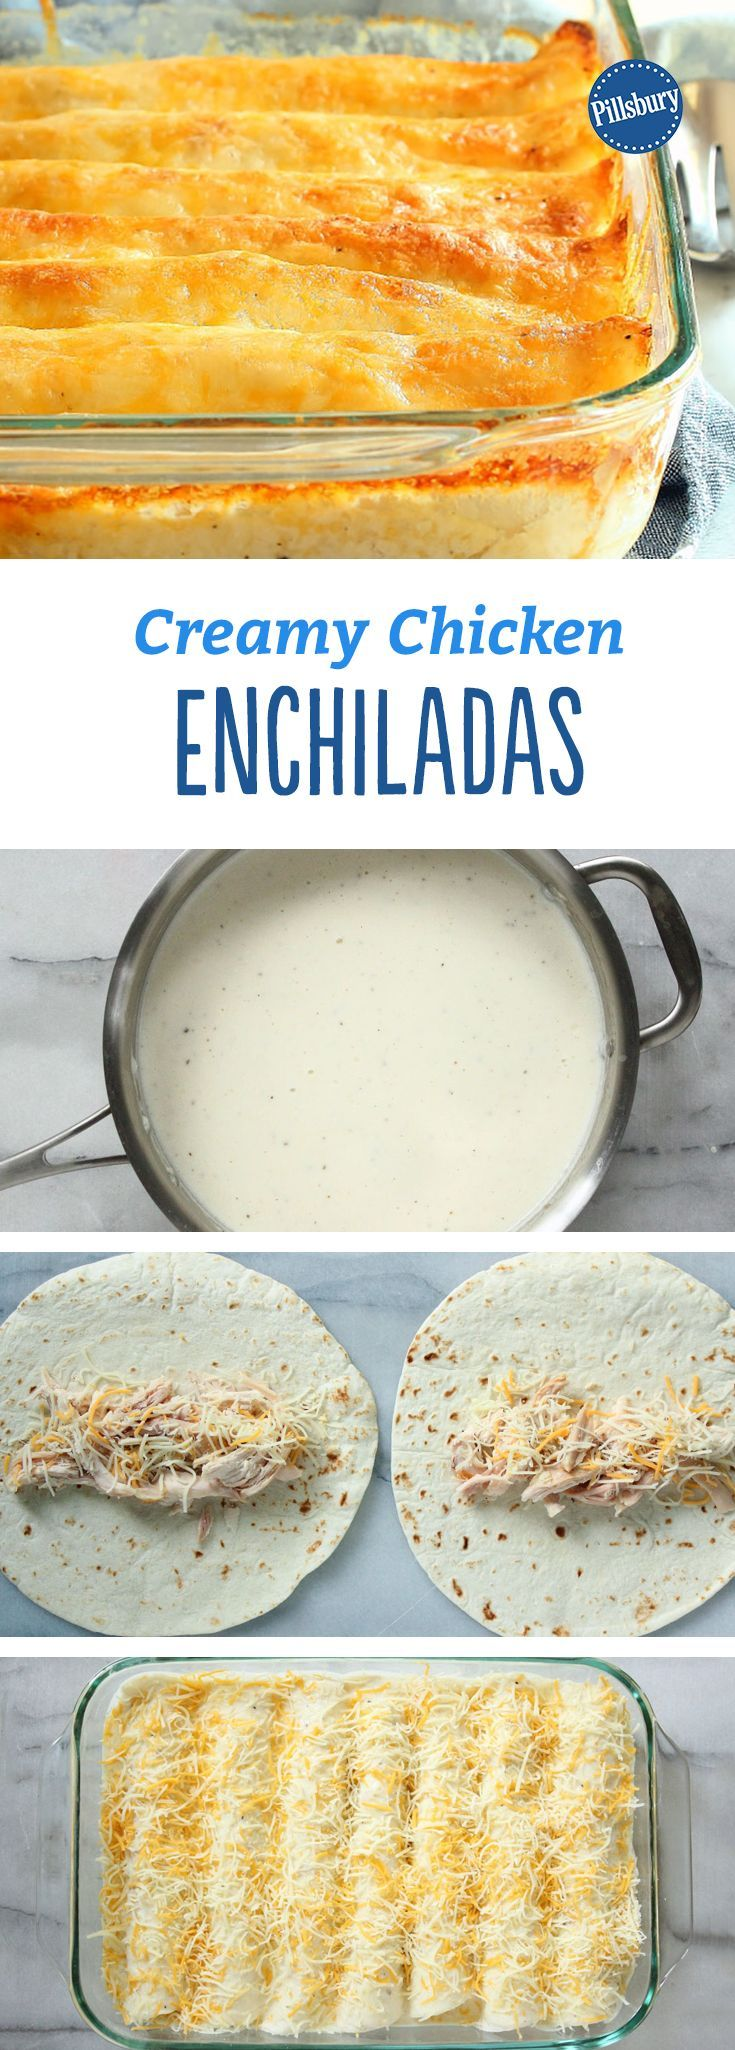 Creamy Chicken Enchiladas: This might just be our favorite chicken enchilada recipe. Theyre so easy—just seven ingredients! —and the unexpected addition of Greek yogurt makes for a rich, creamy white sauce that cant be beat. And of course, the whole thing is finished with piles of ooey, gooey cheese. Its a dinner winner!